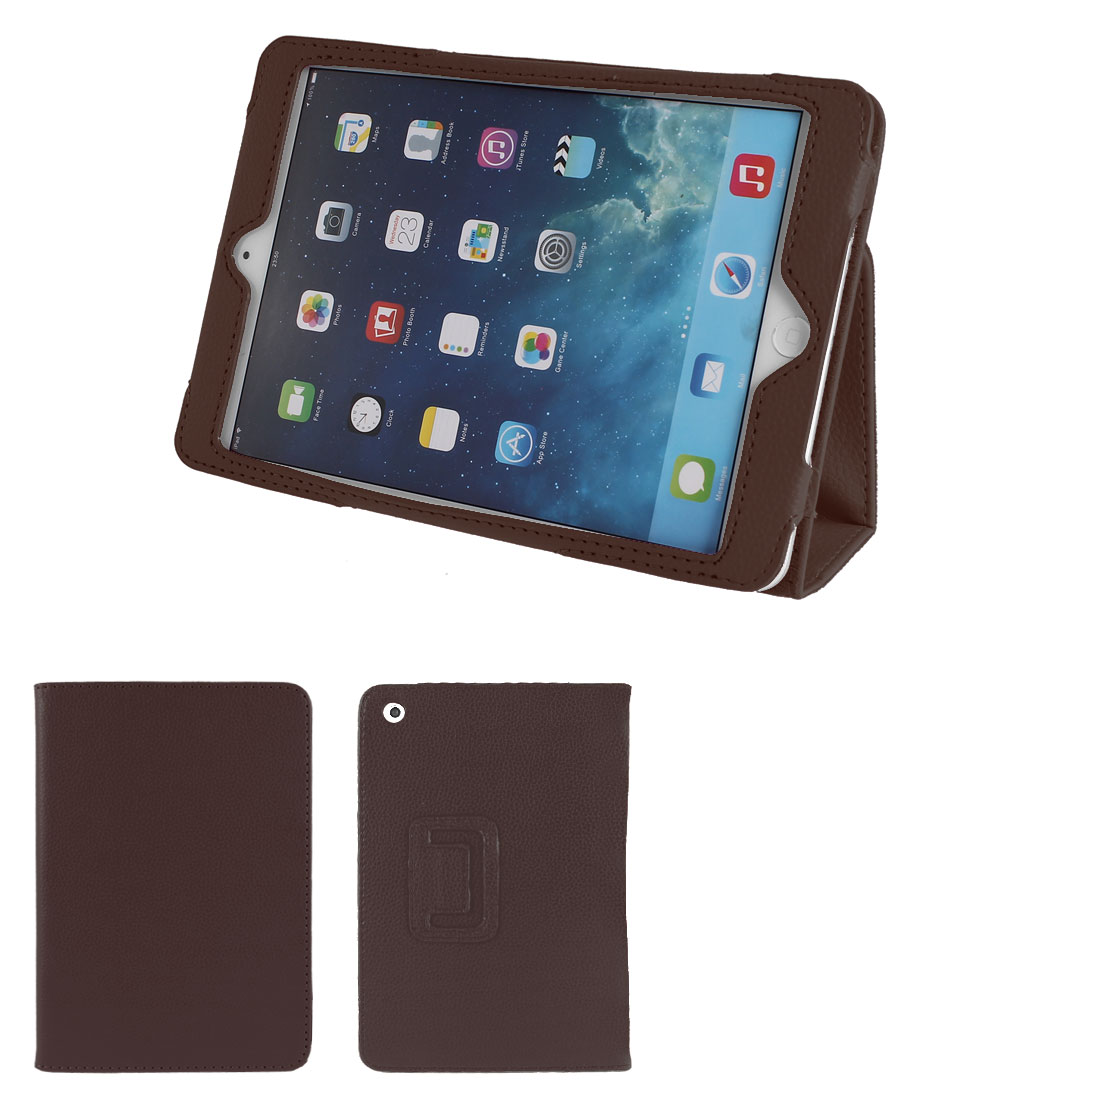 PU Leather Stand Magnet Folio Flip Tablet Protective Case Cover Brown for iPad Mini 1 2